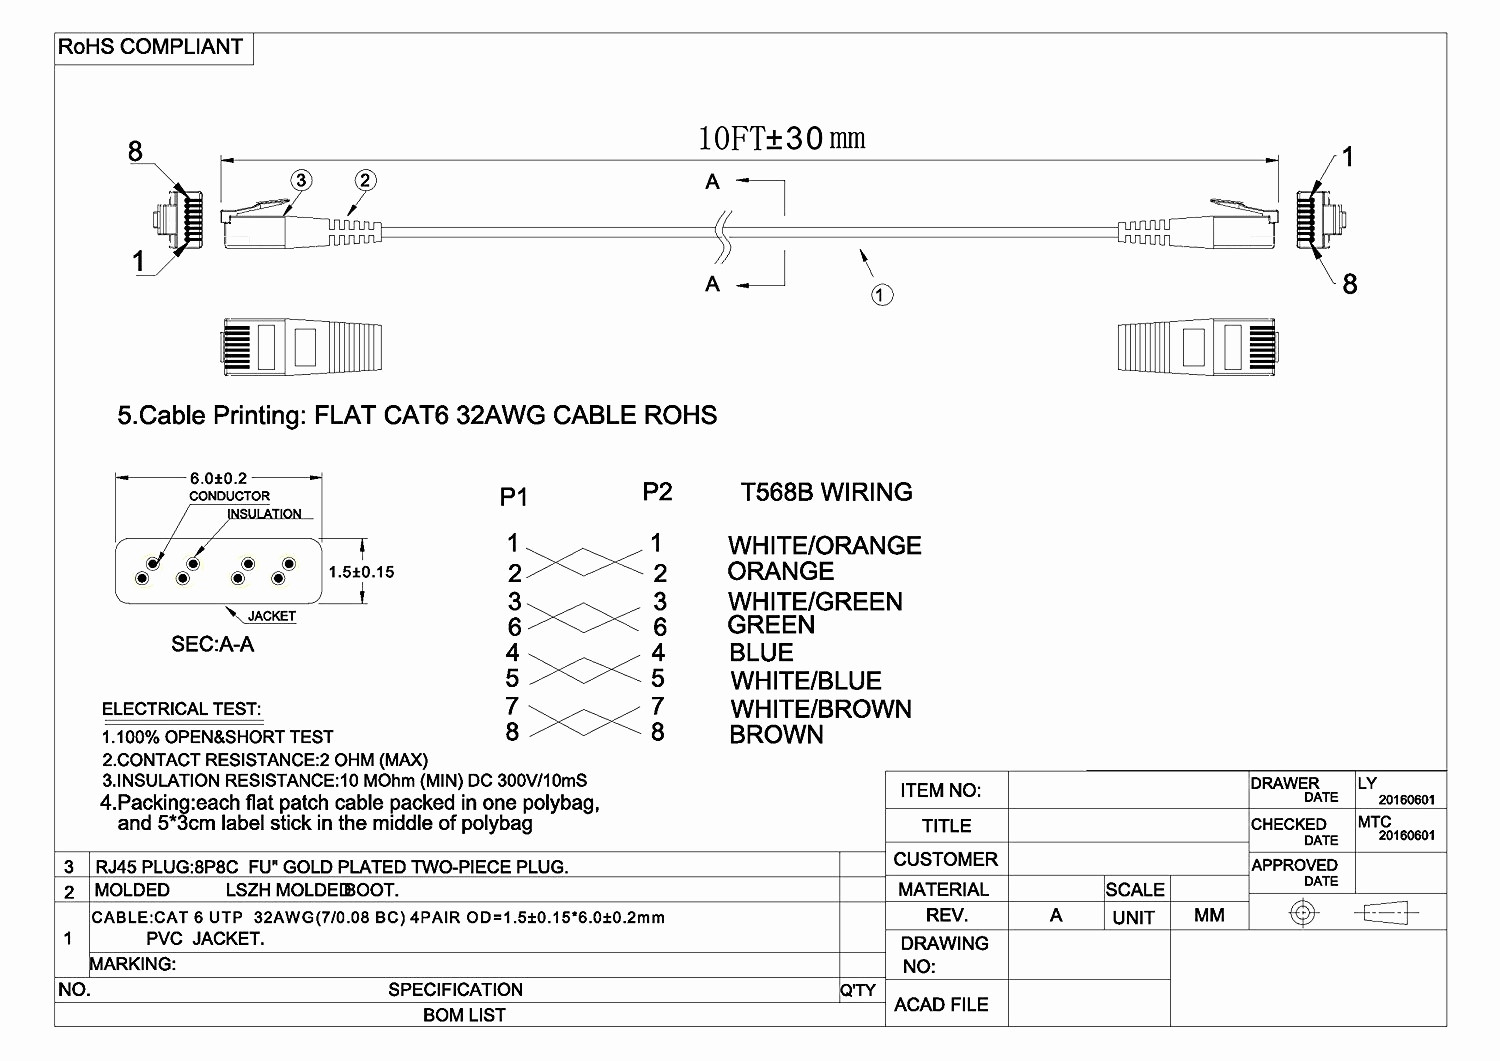 Cat 5 Cable Wiring Diagram Pdf | Wiring Diagram  Pair Cat Wiring Diagram on cat 5 rj 45 wiring, cat 3 cable wiring diagram, cat 7 wiring diagram, cat 6 wiring diagram, cat 5 568b wiring-diagram, cat 5 cable wiring, cat 5 cable color code chart, cat 5 network cable pattern,